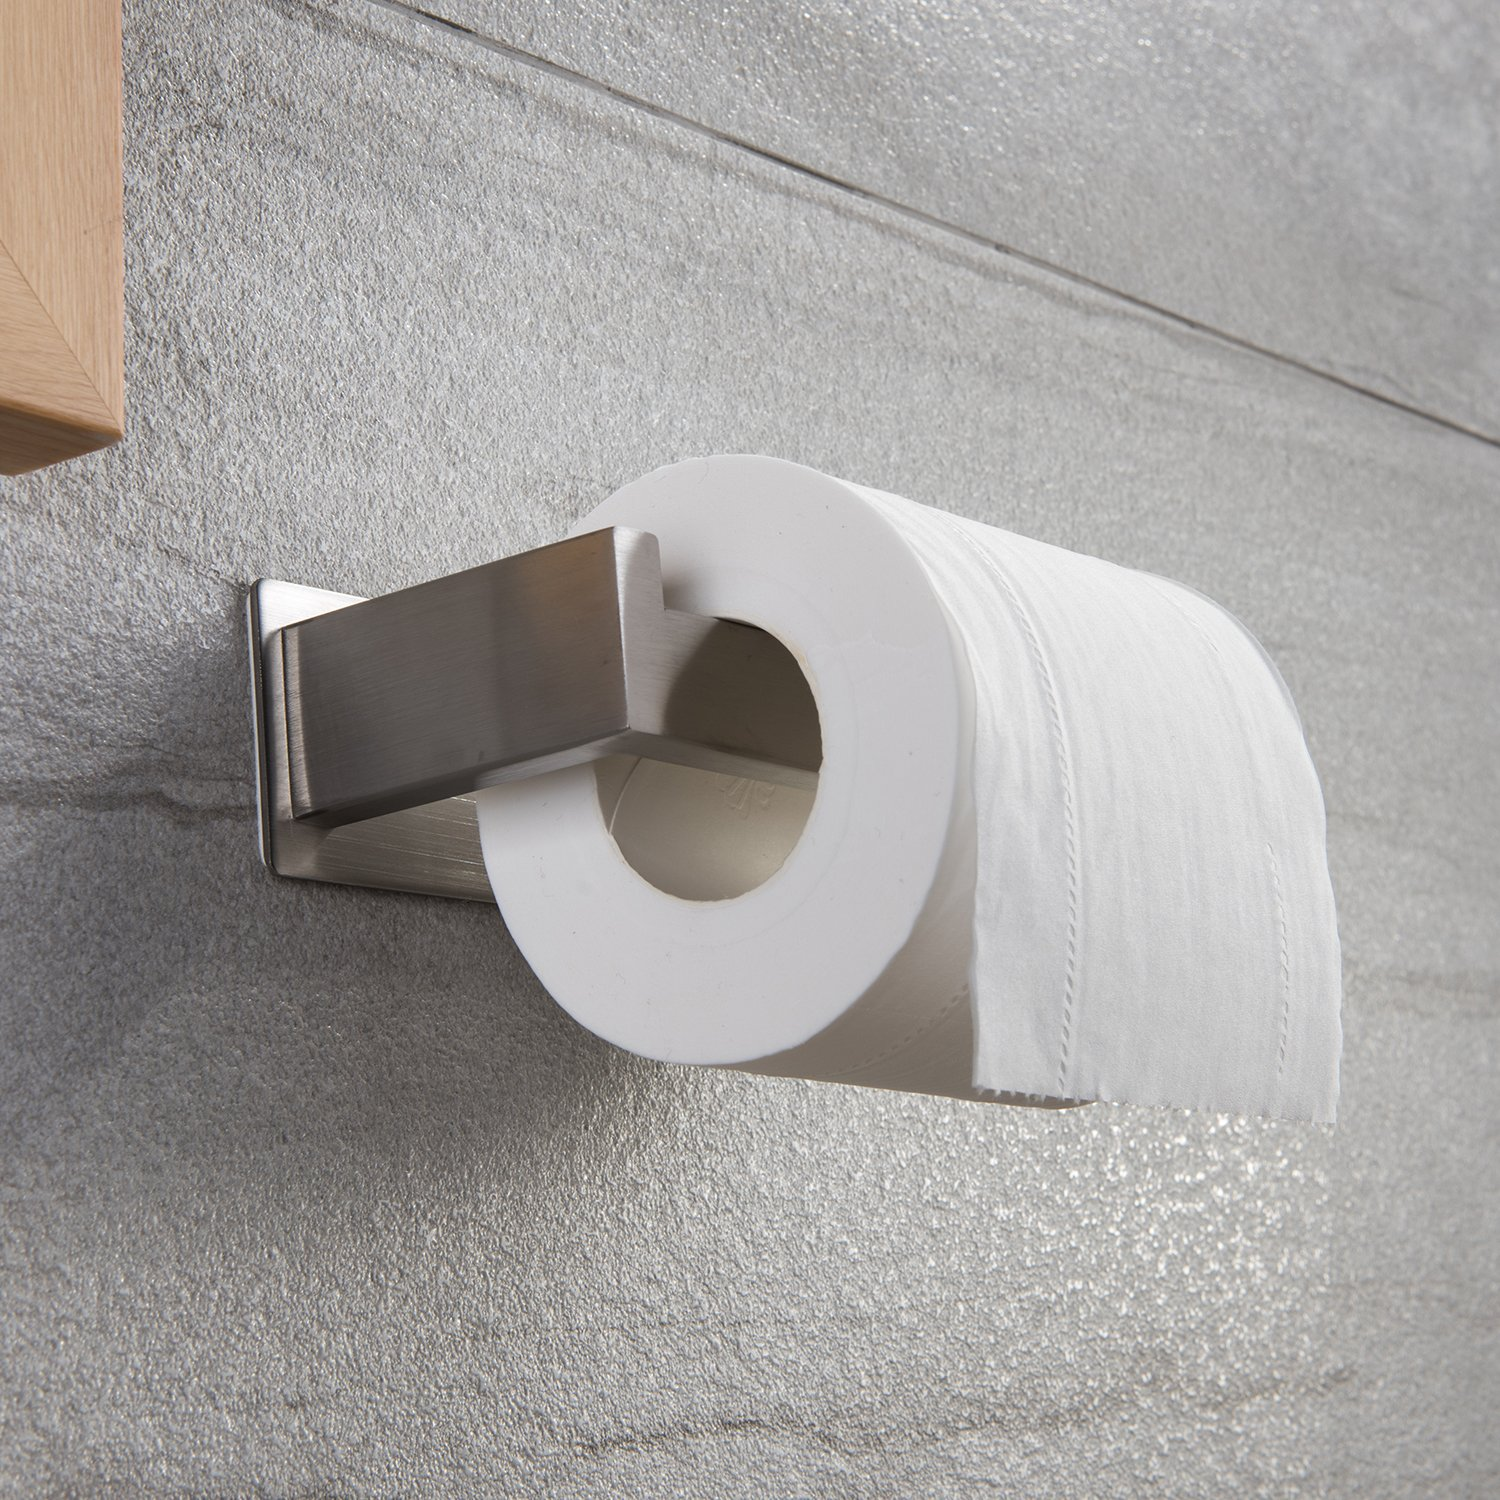 Taozun Toilet Paper Holder 3M Self Adhesive Bathroom Roll Holder Stick on Wall SUS 304 Stainless Steel Brushed by Taozun (Image #3)